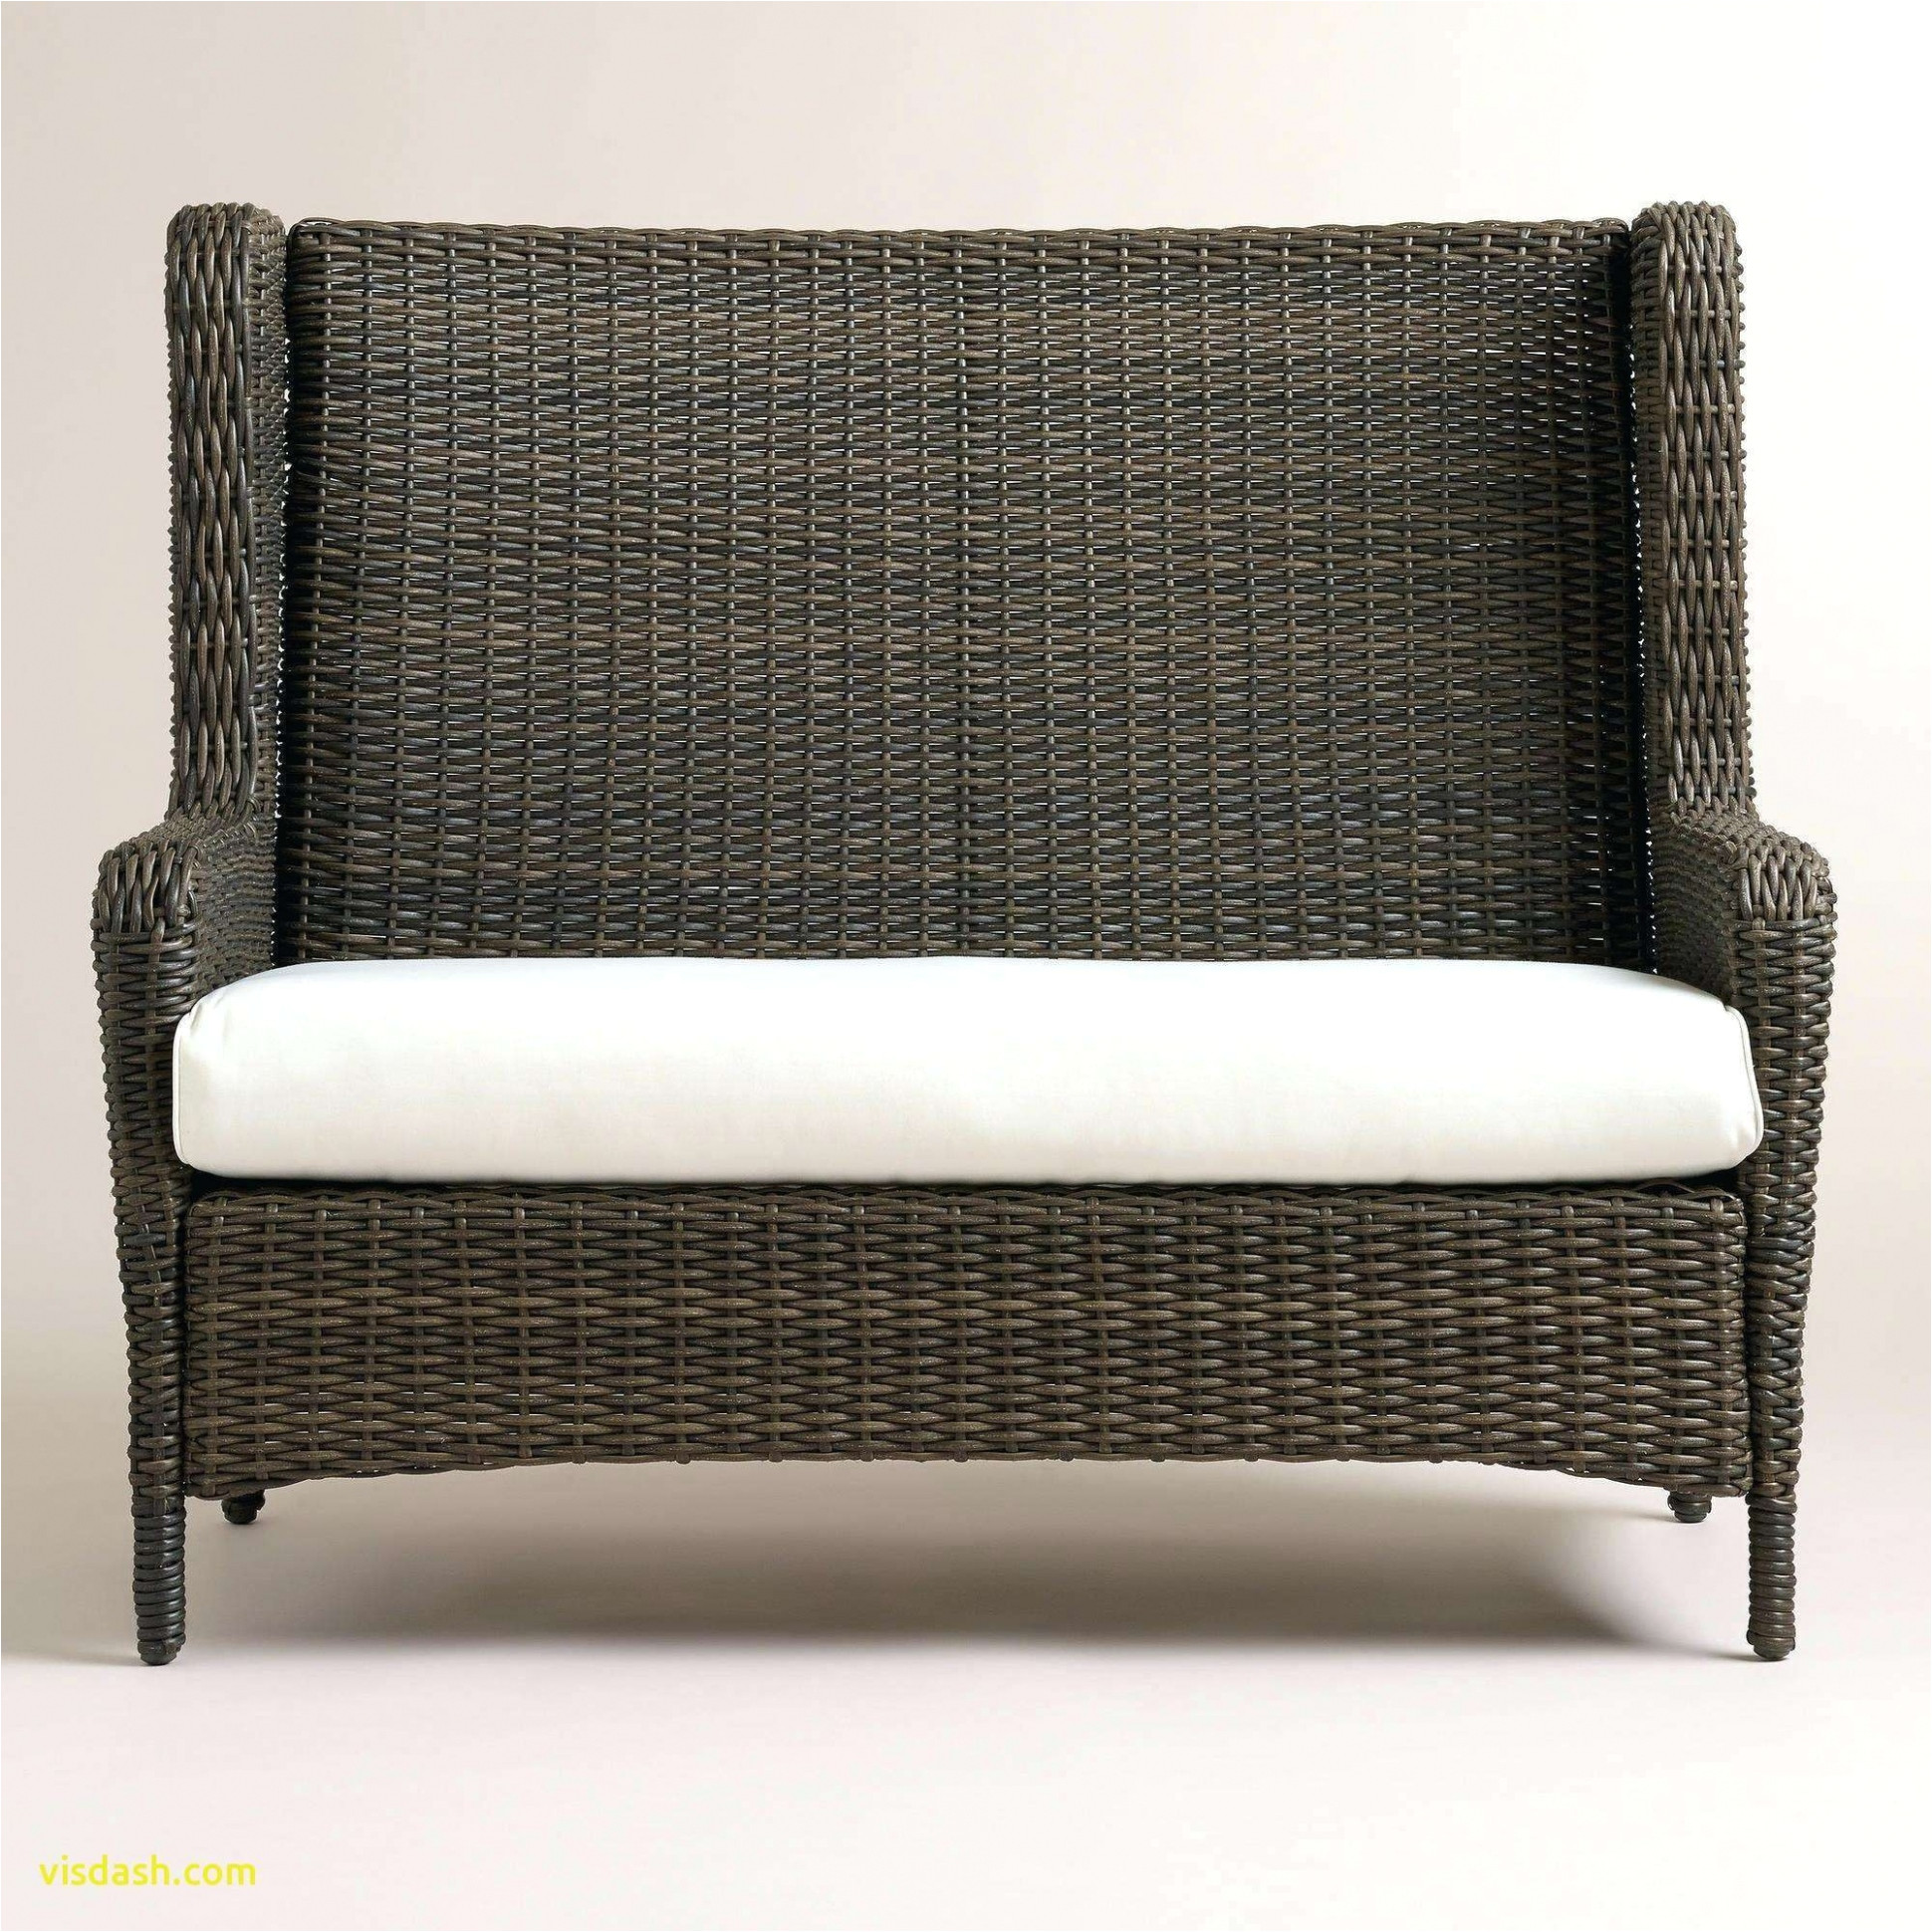 wicker egg chair inspirational patio egg chair beautiful wicker outdoor sofa 0d patio chairs sale of